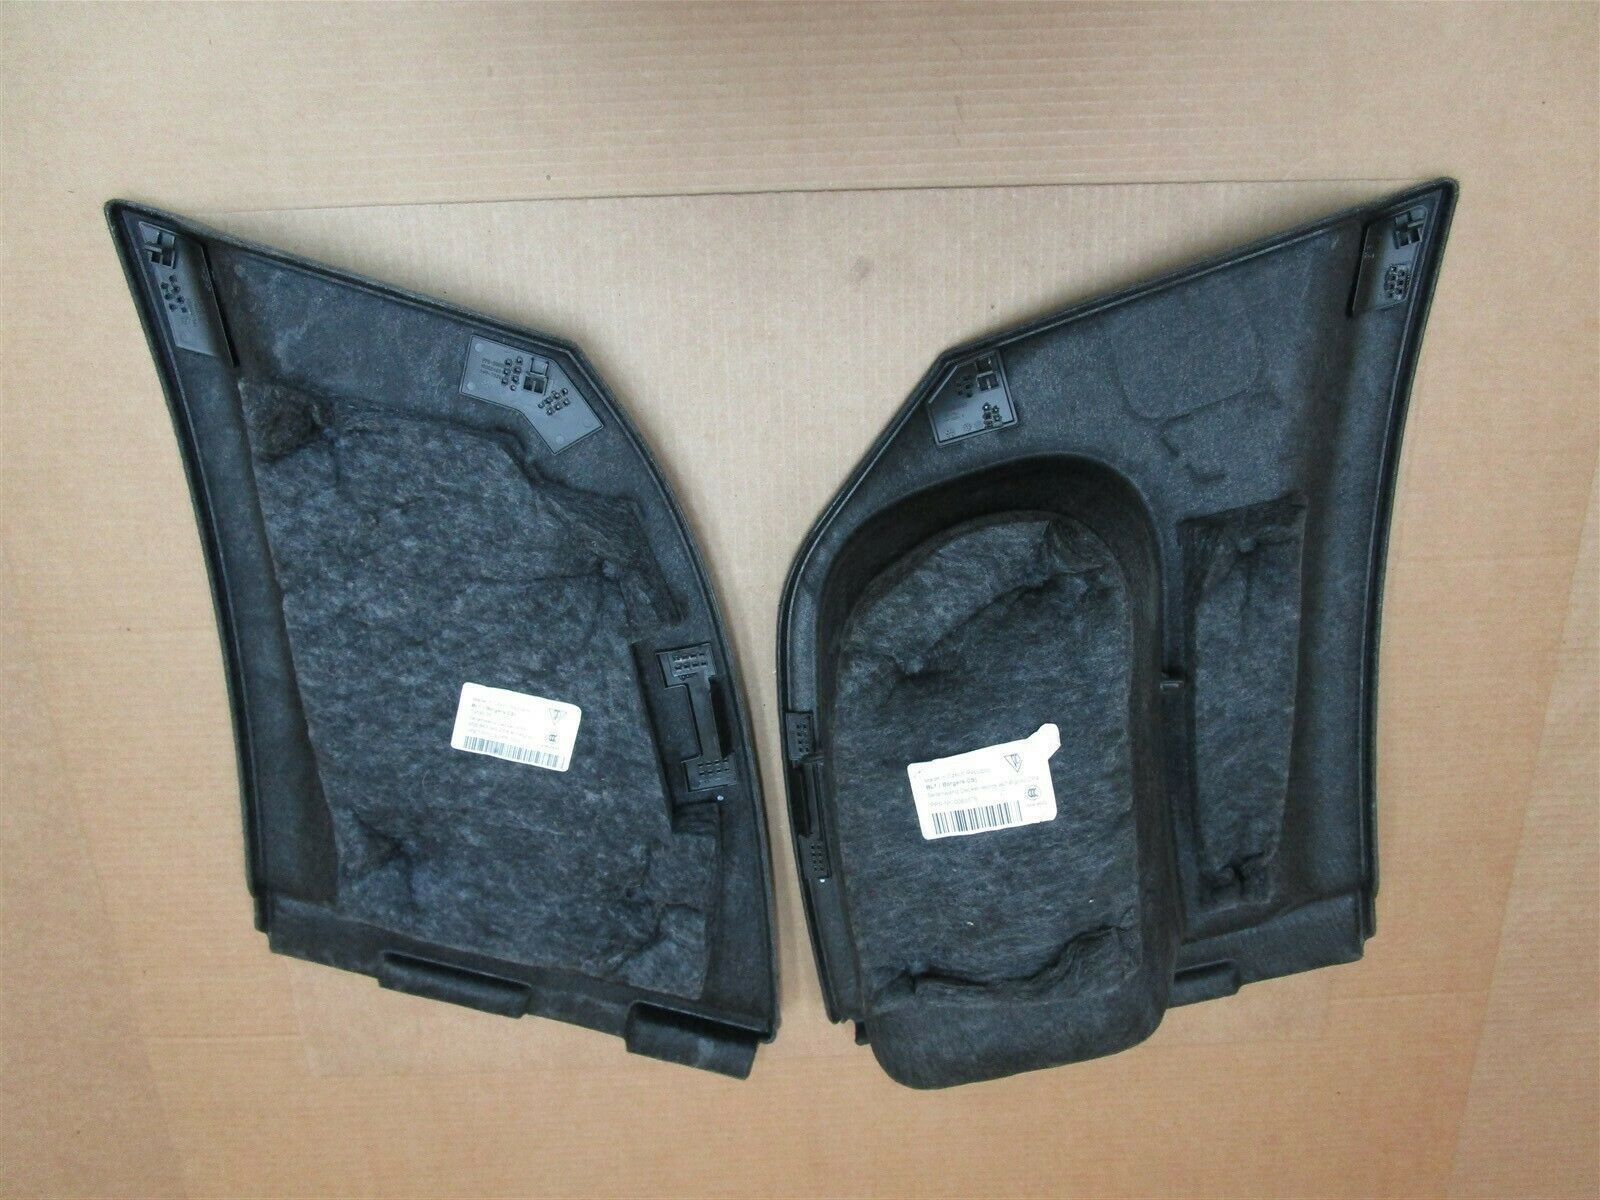 16 Macan S RWD Porsche L R REAR CARPET TRUNK TRIMS 95B863989ZP4 22,214